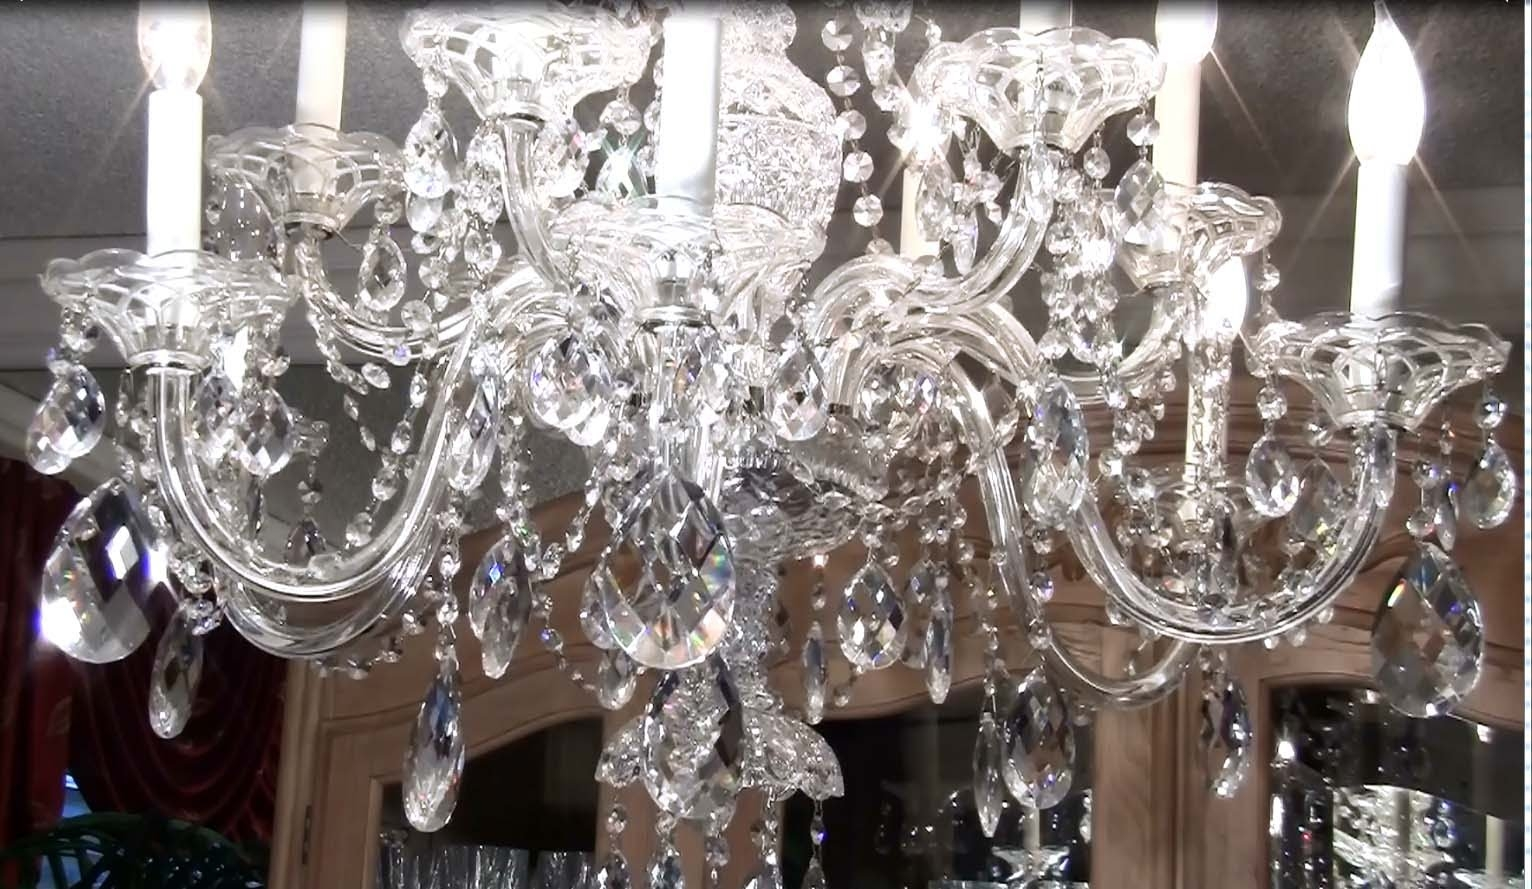 How To Clean A Crystal Chandelier Youtube With Regard To Crystal Chandeliers (Image 8 of 15)